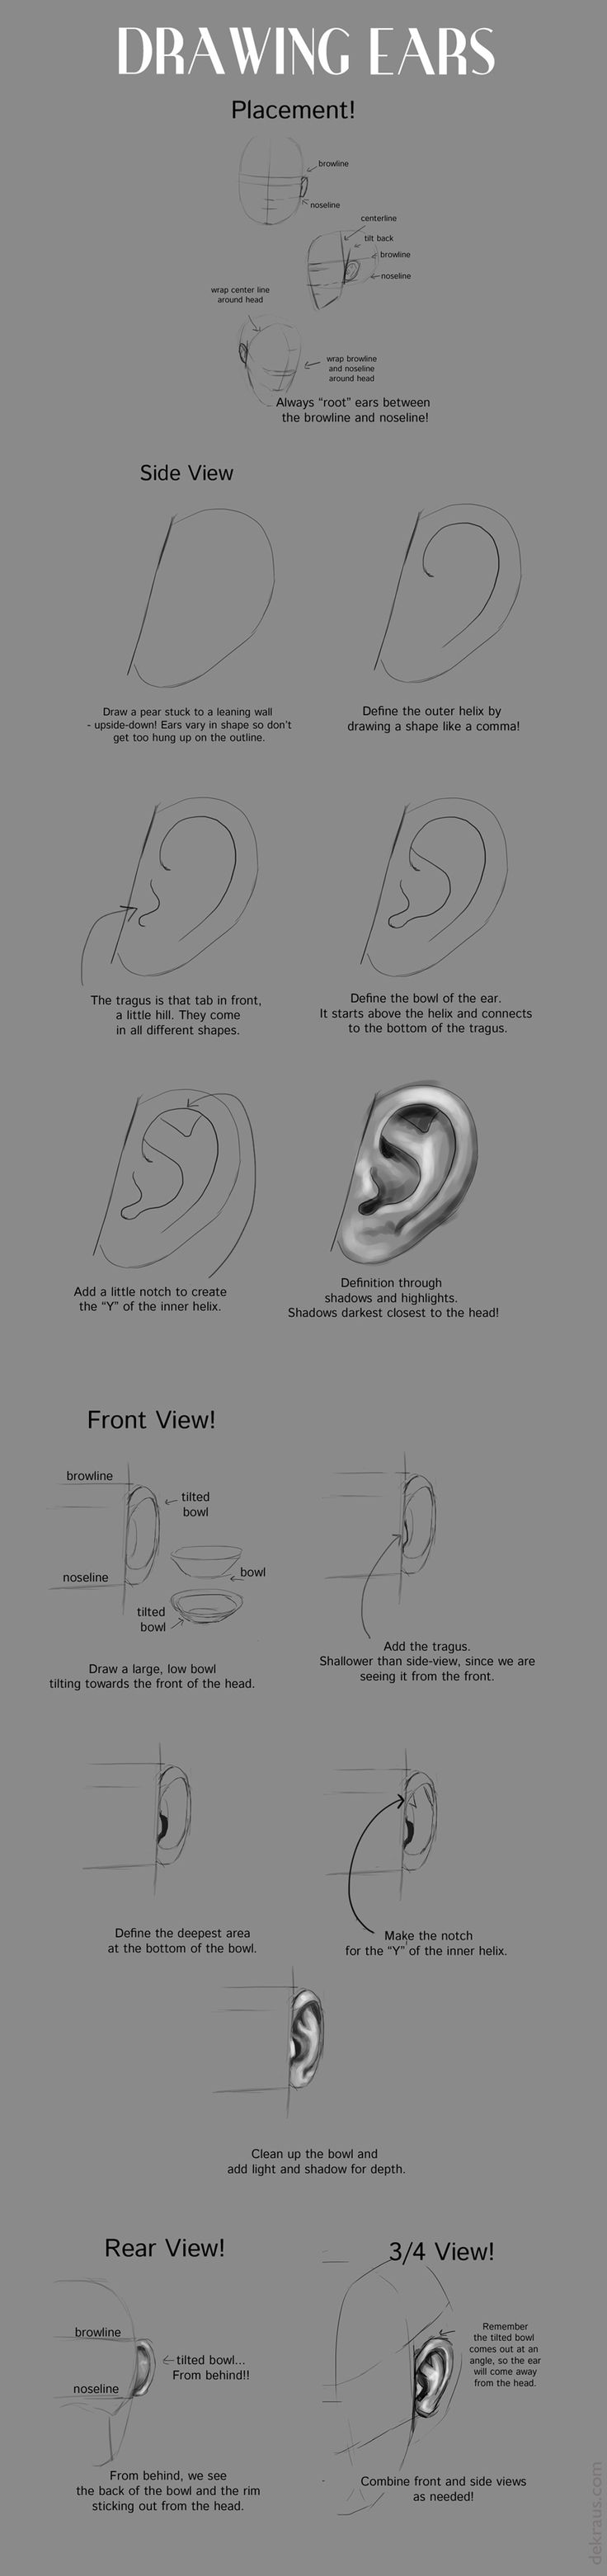 best 25 open mouth drawing ideas on pinterest simple drawings